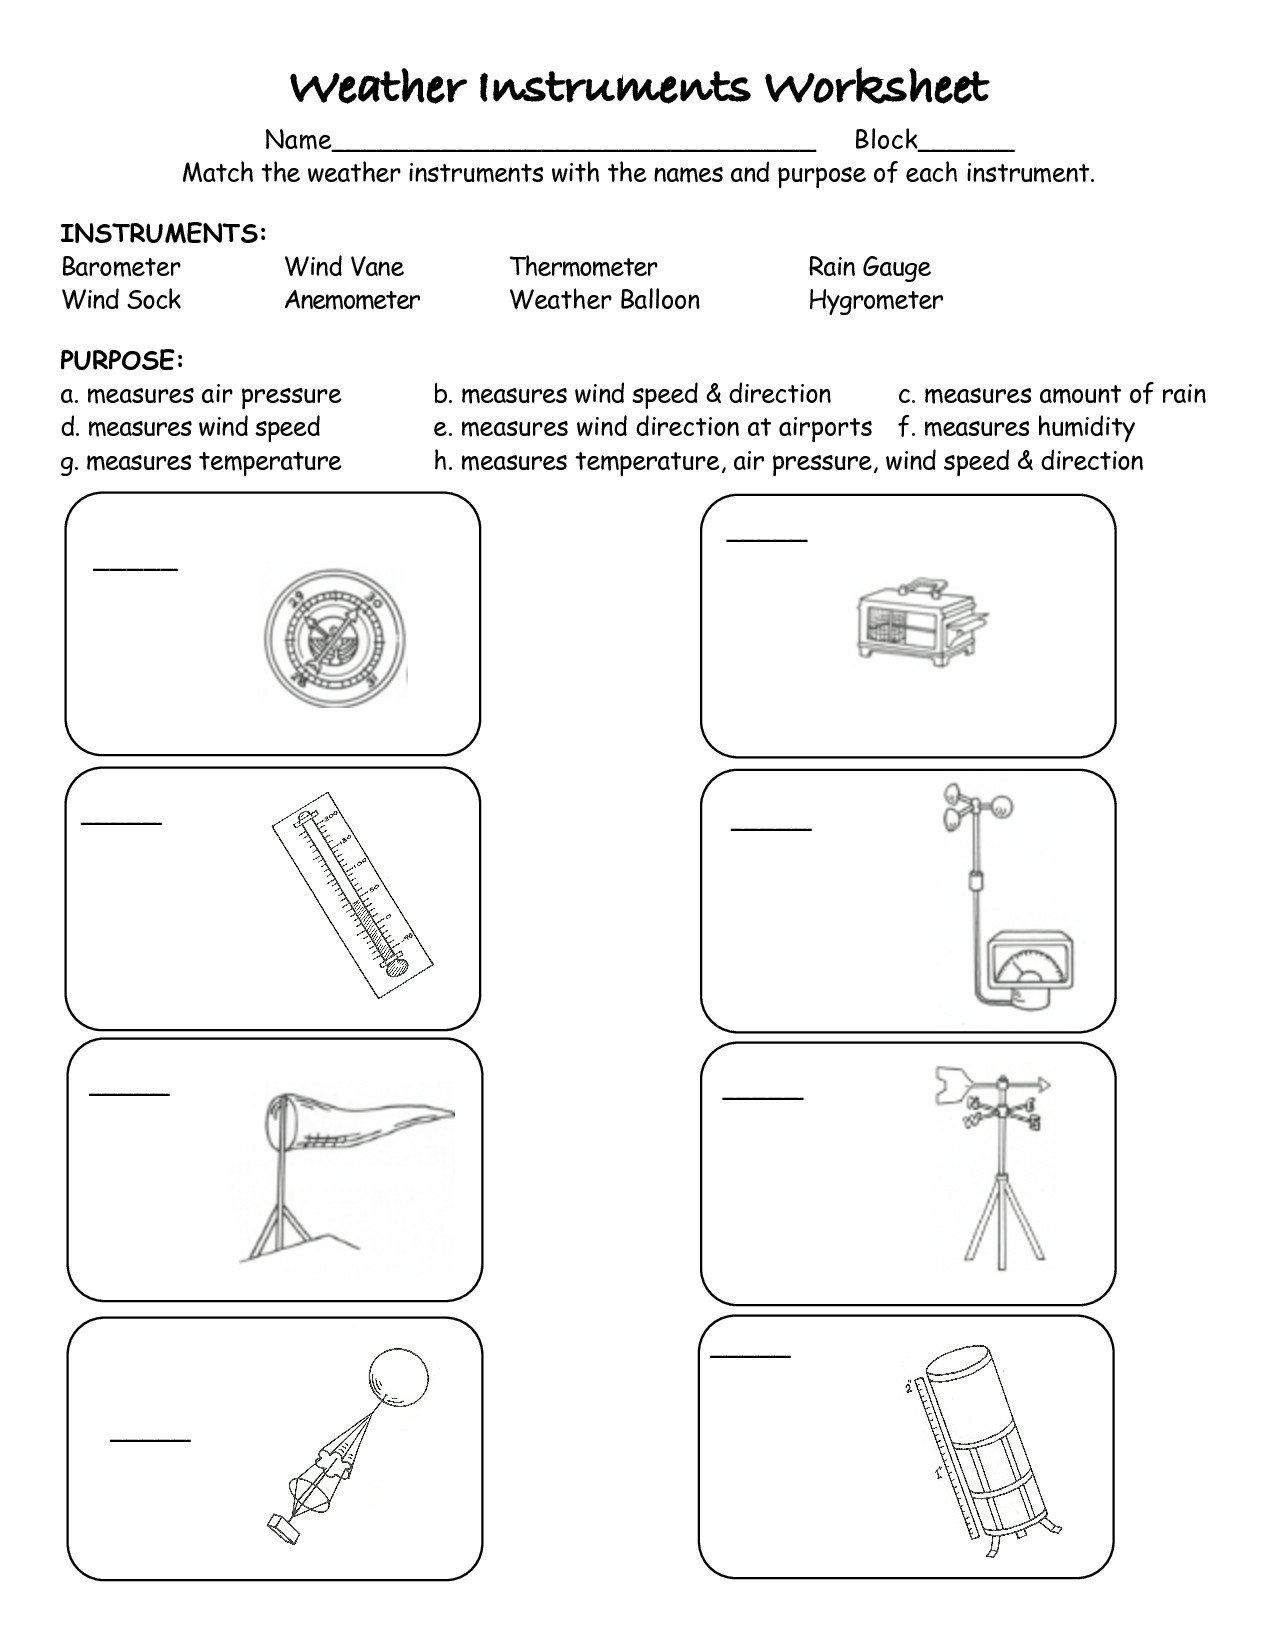 Weather tools Worksheet Science 4th Grade Worksheets Ecosystems